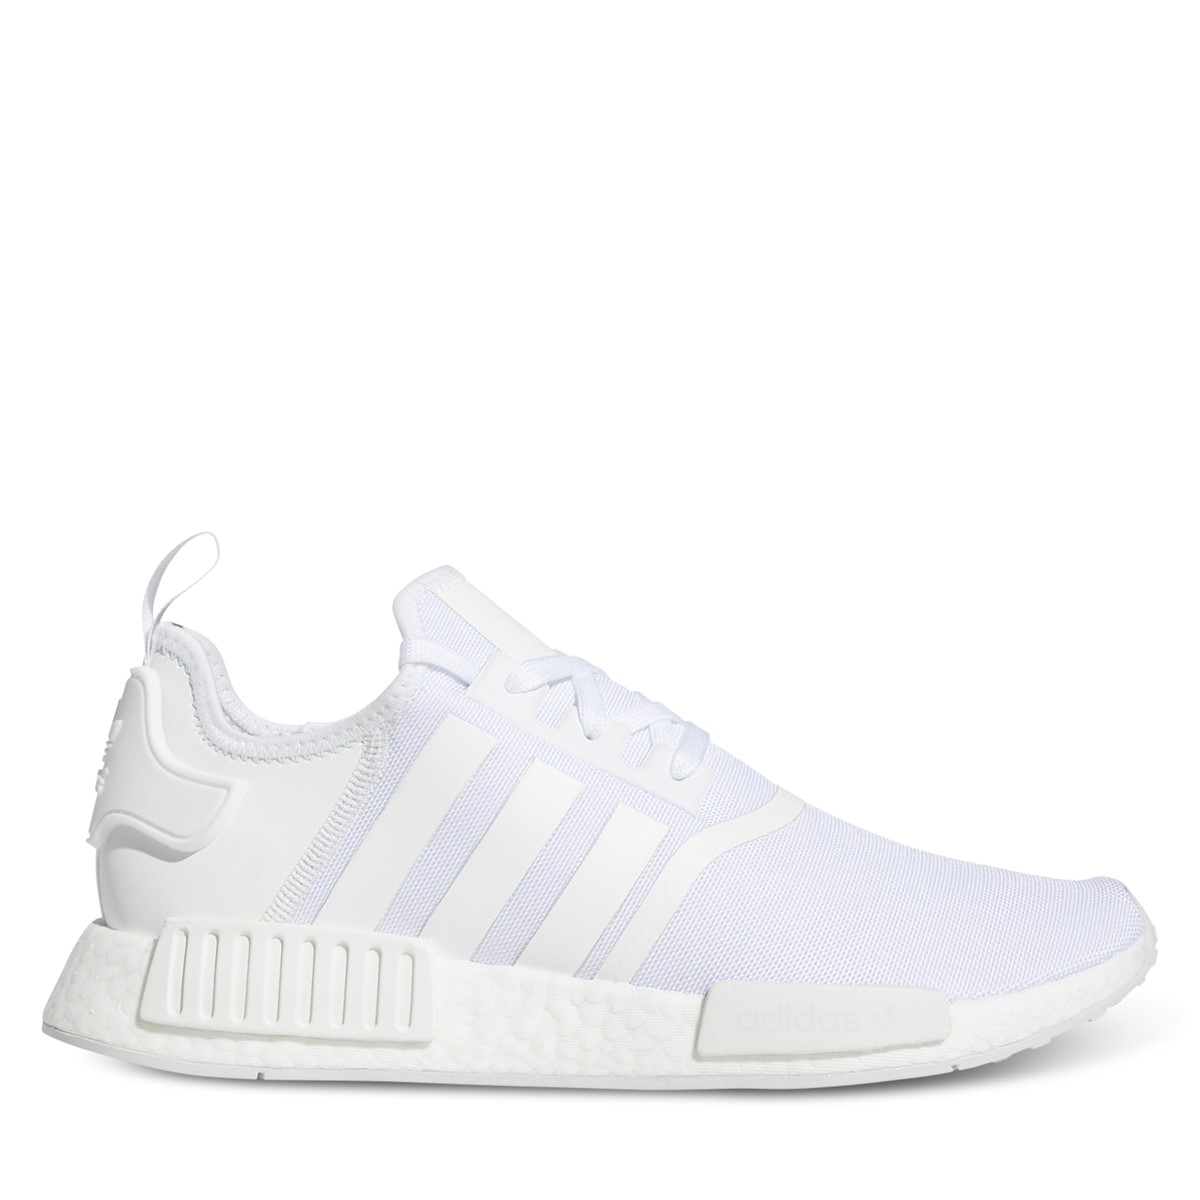 Men's NMD_R1 Sneakers in White/Off-White